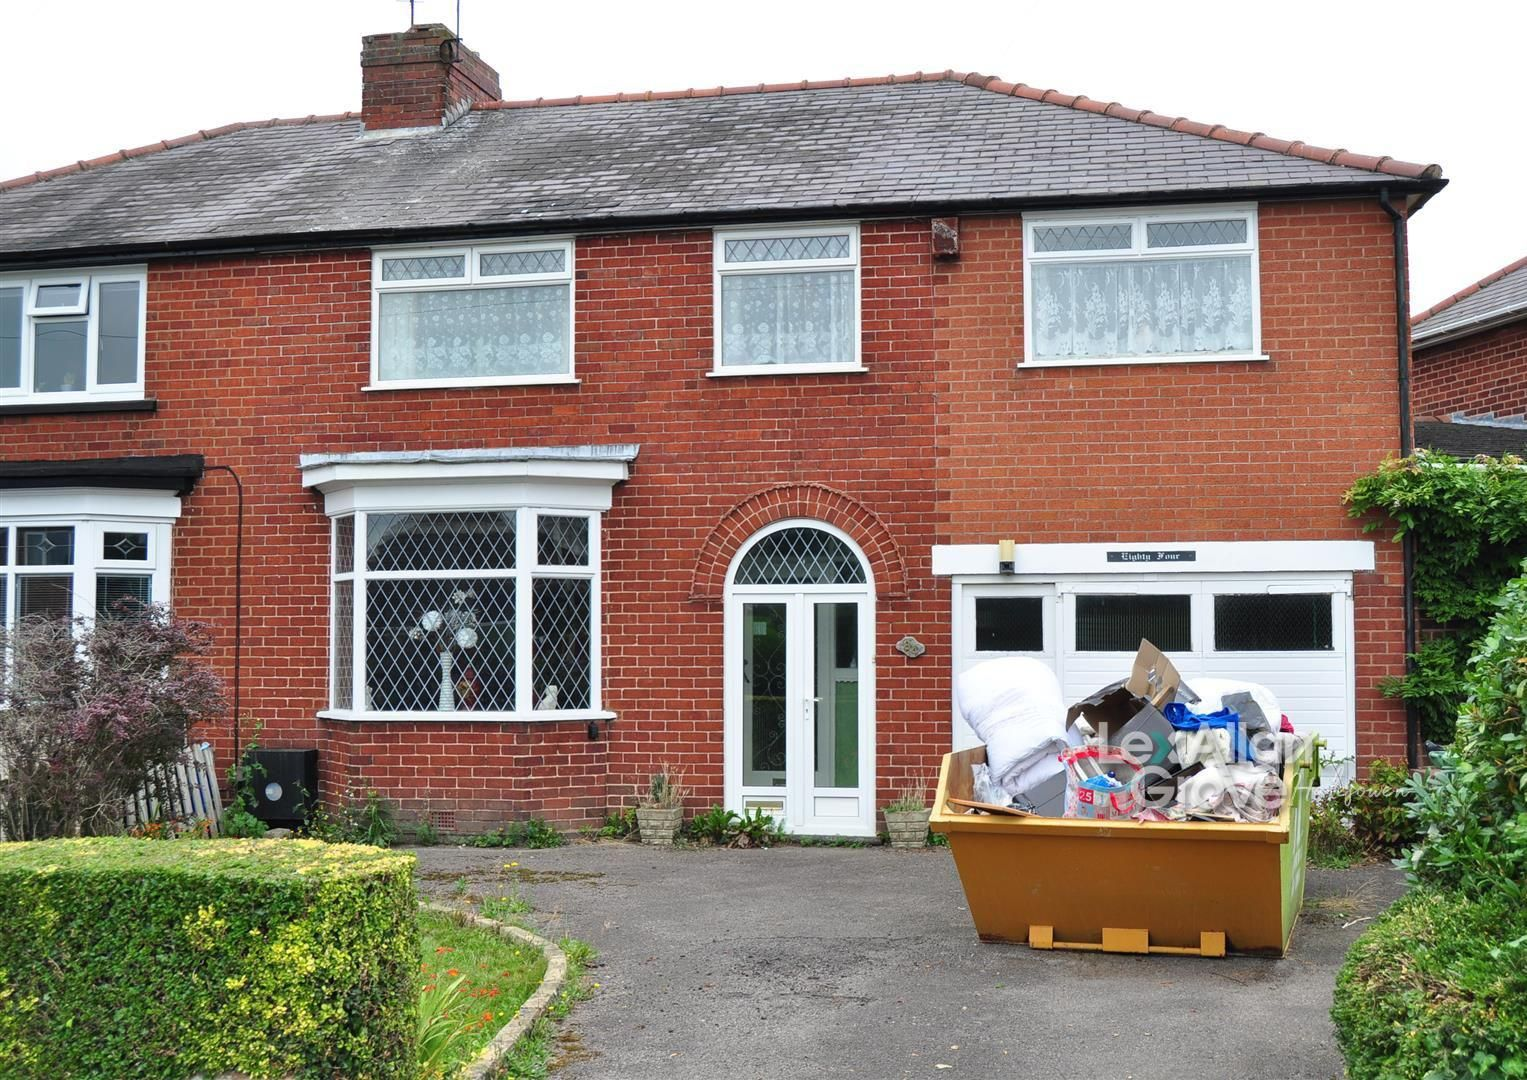 4 bed semi-detached for sale, B63